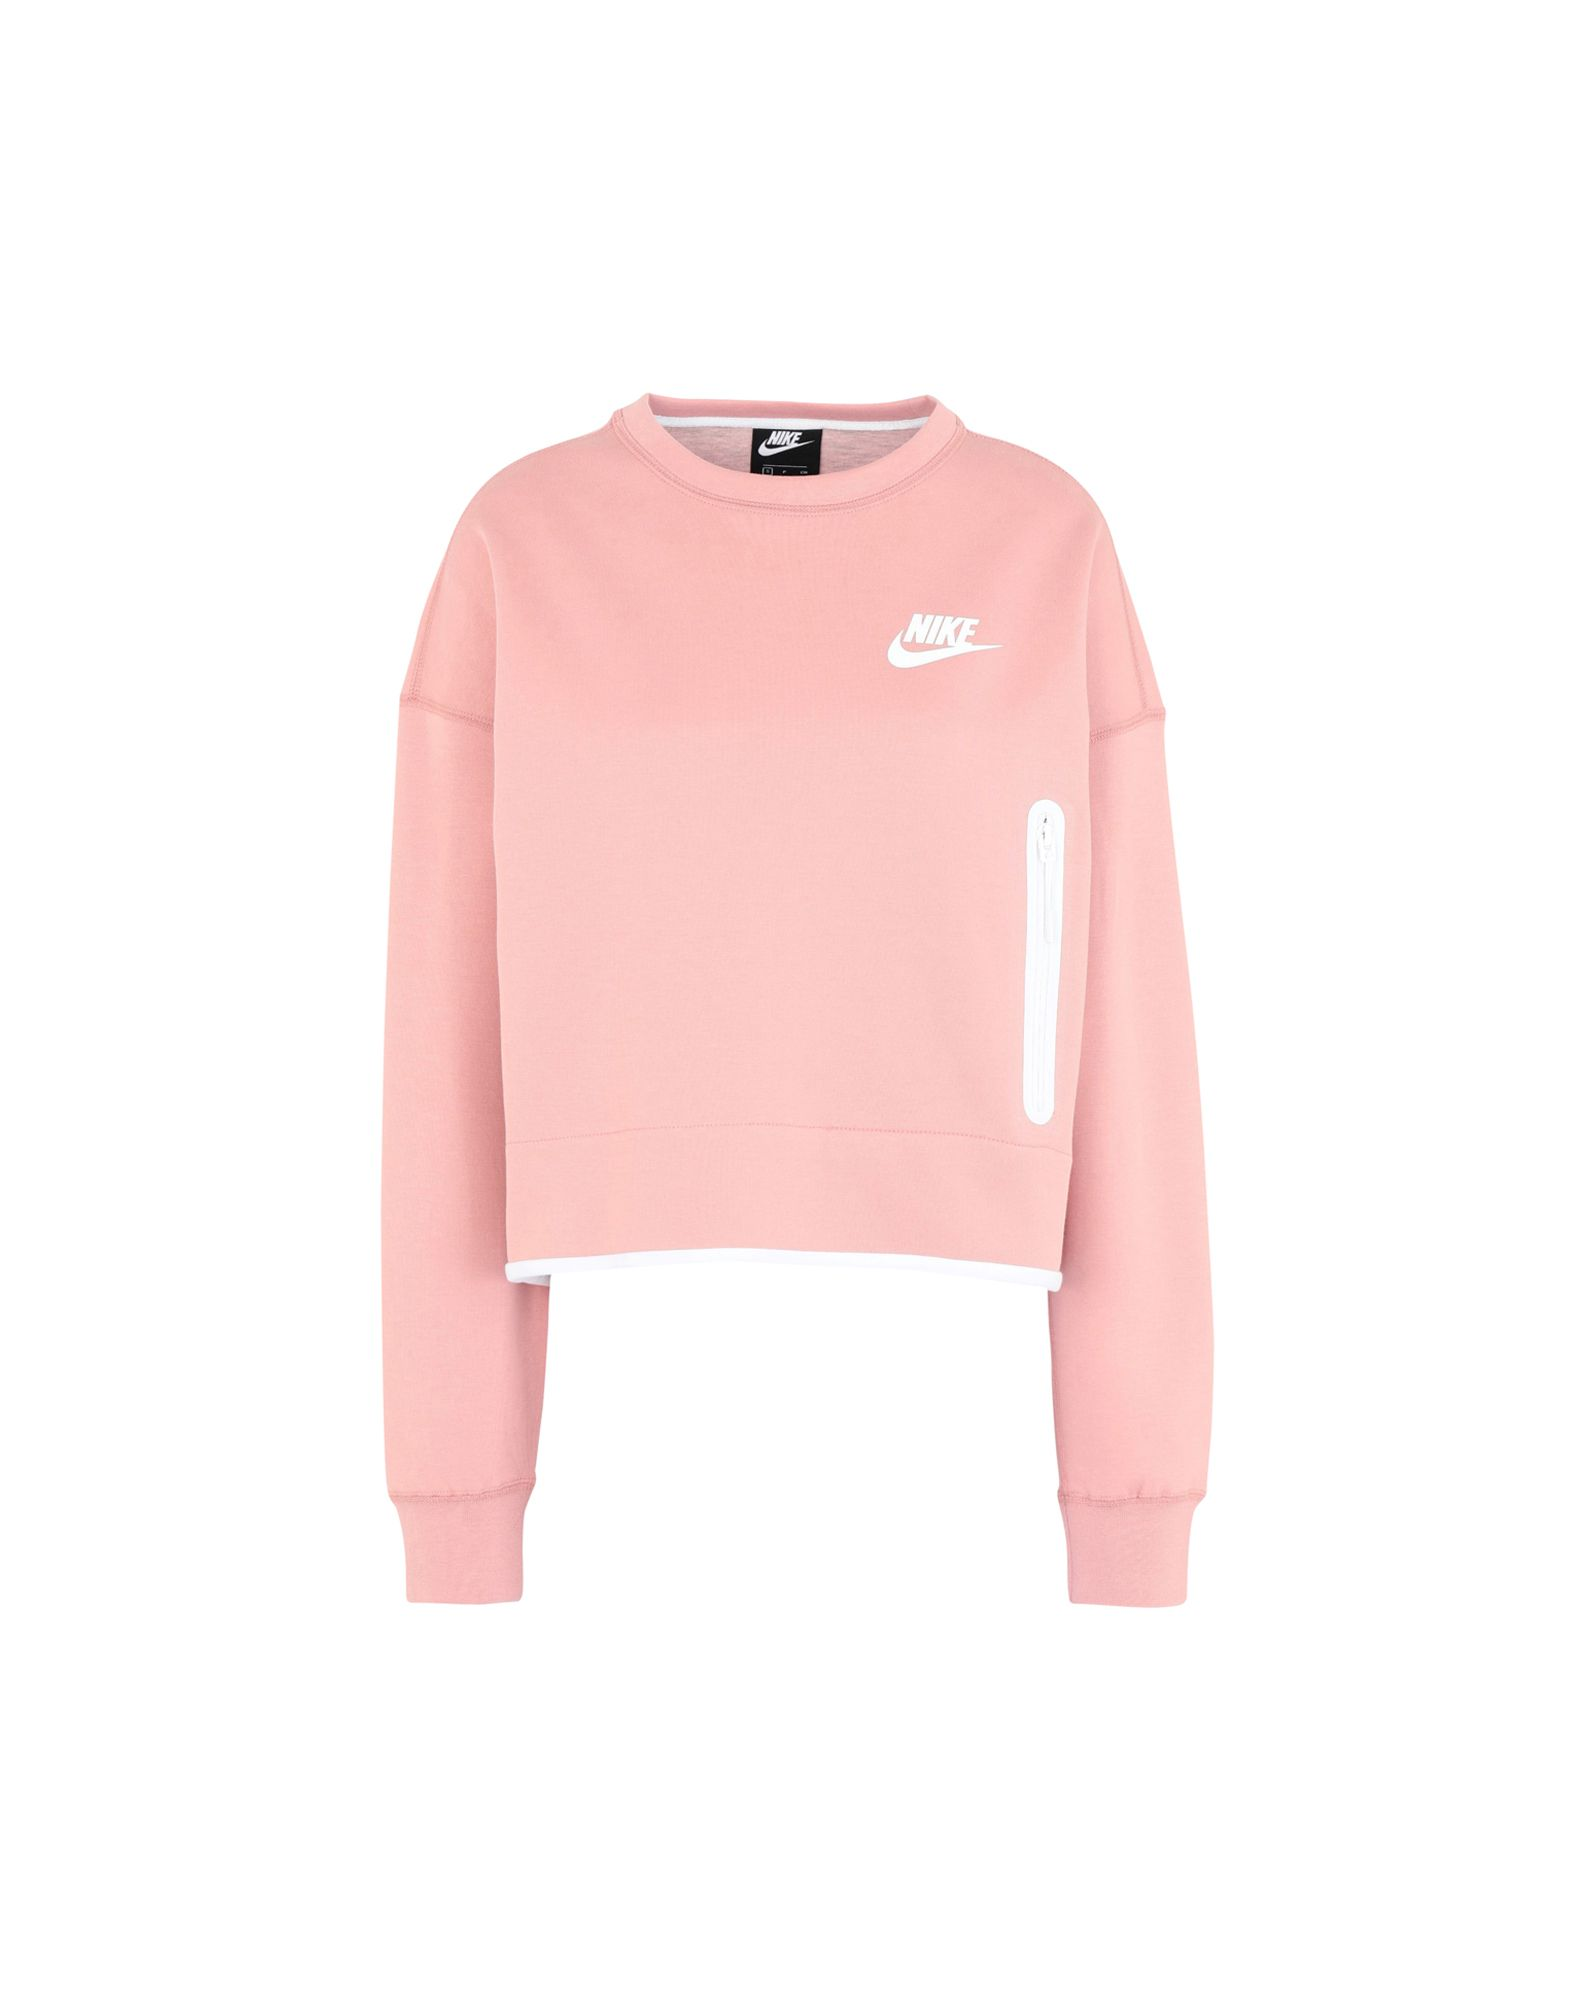 8ecae679cf57a Nike Tech Fleece Crew - Sweatshirt - Women Nike Sweatshirts online ...